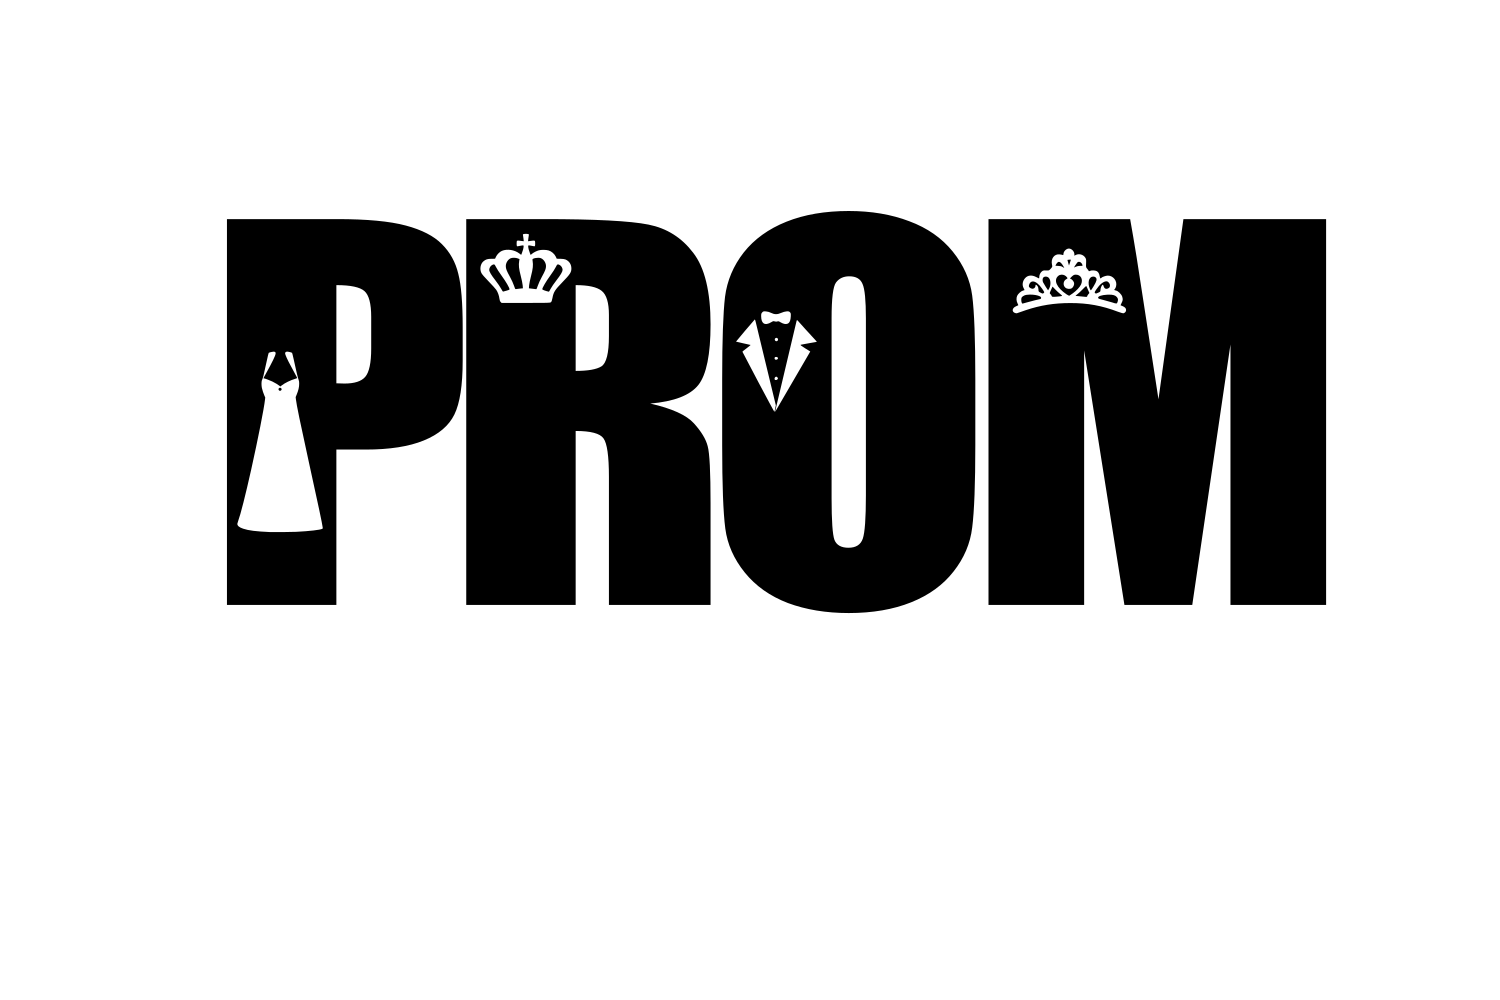 Prom-Digital-SVG-File-by-Auntie-Inappropriate-Designs Svg Homecoming Designs on mobile designs, multimedia designs, astech designs, animation designs, excel designs, flash designs, style designs, stl designs, text designs, microsoft designs, christian shirt designs, cut designs, otf designs, design designs, dxf designs, art designs, wordpress designs, inkscape designs, mac designs,